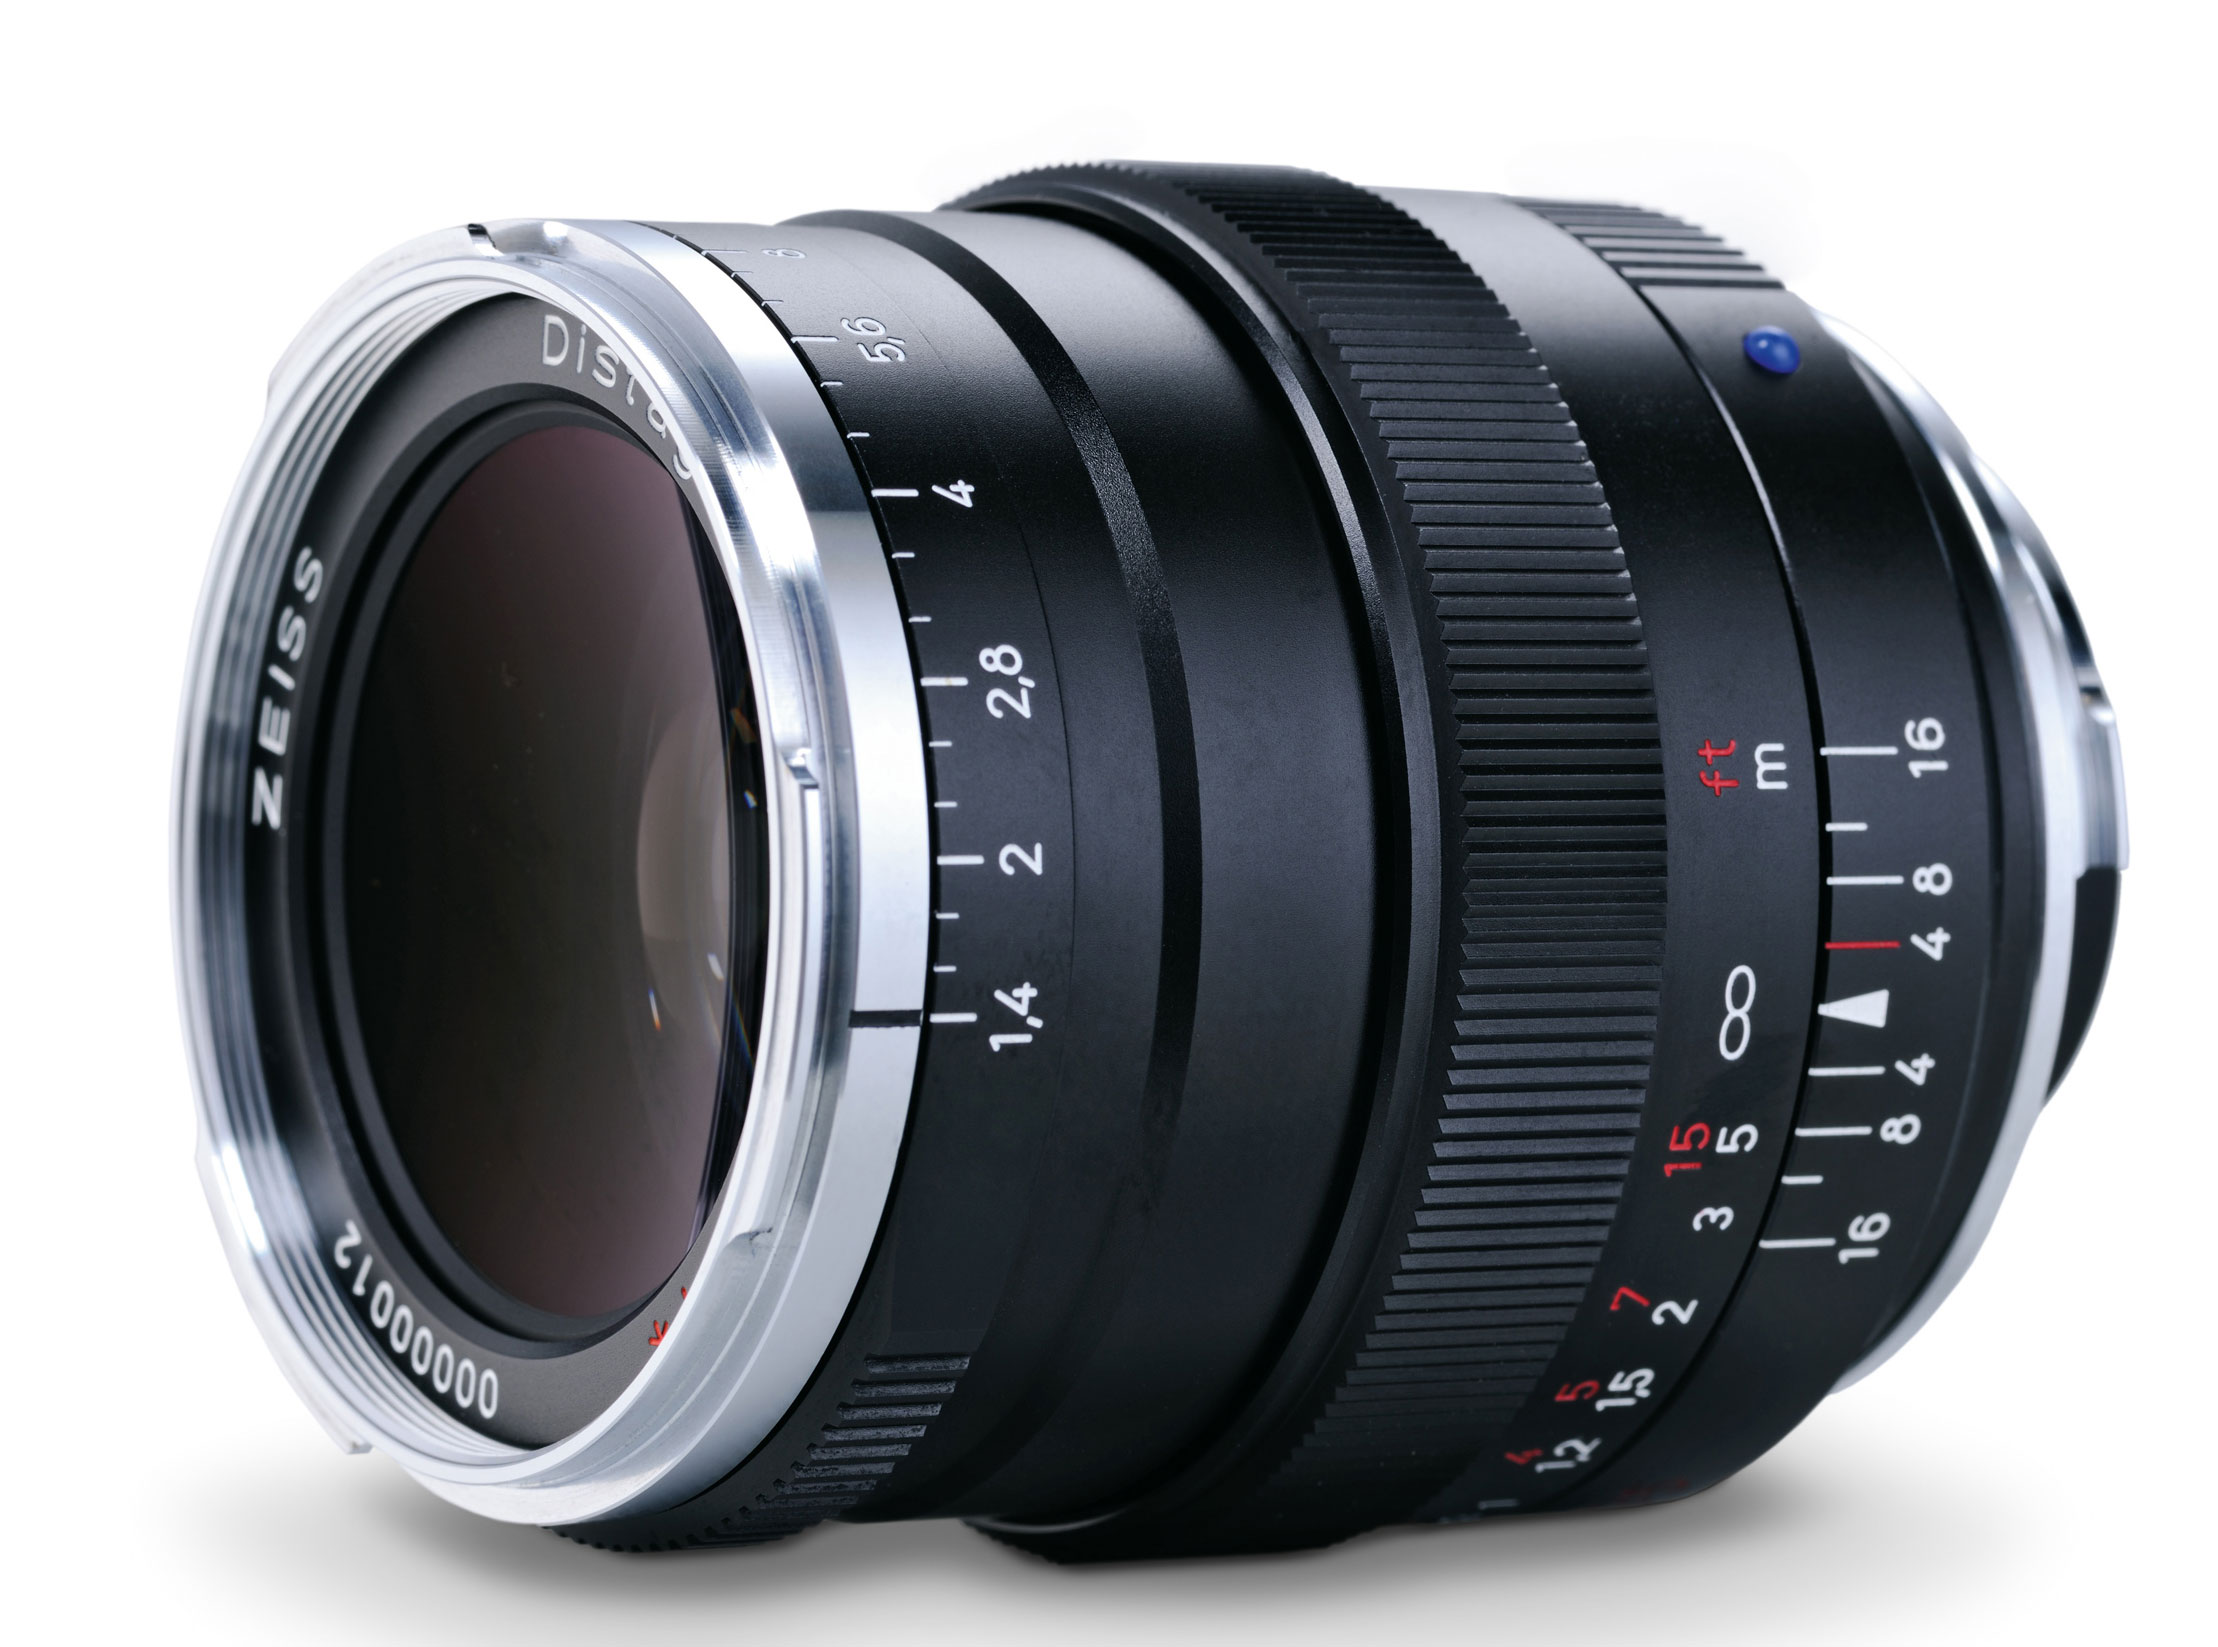 Zeiss introduces Distagon T* 35mm F1 4 ZM lens: Digital